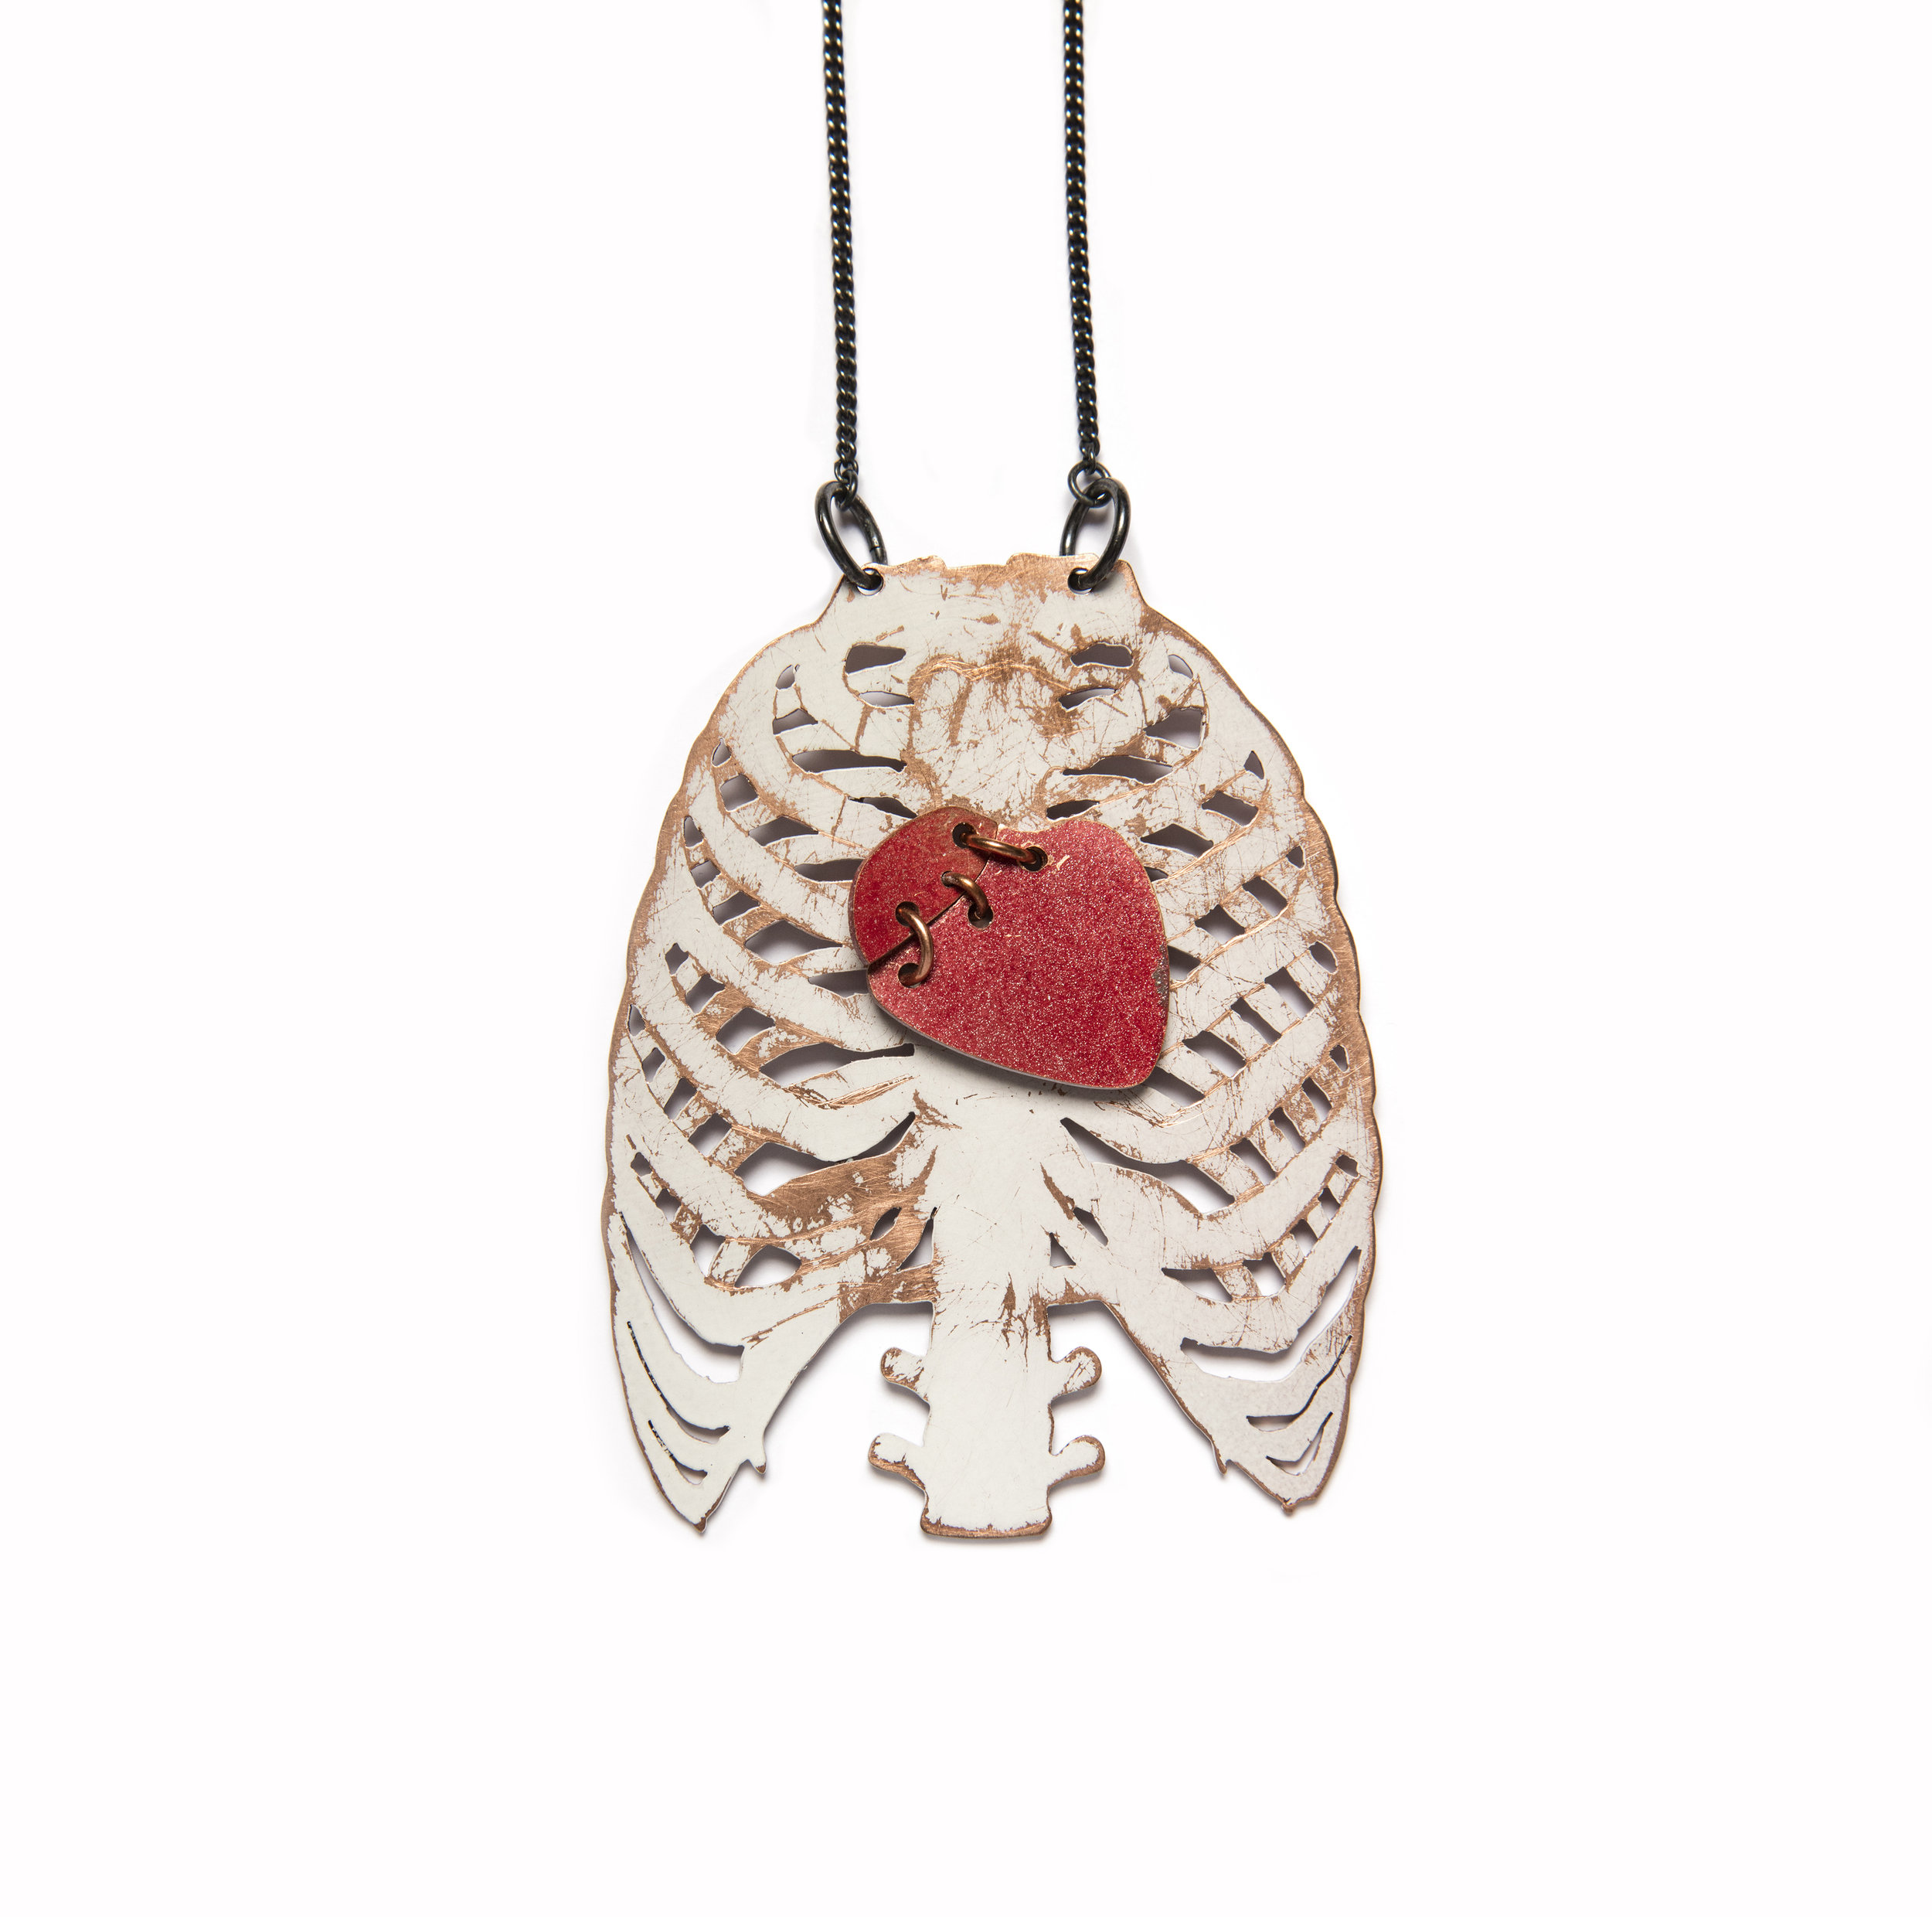 Ribcage Necklace by Anna Watson